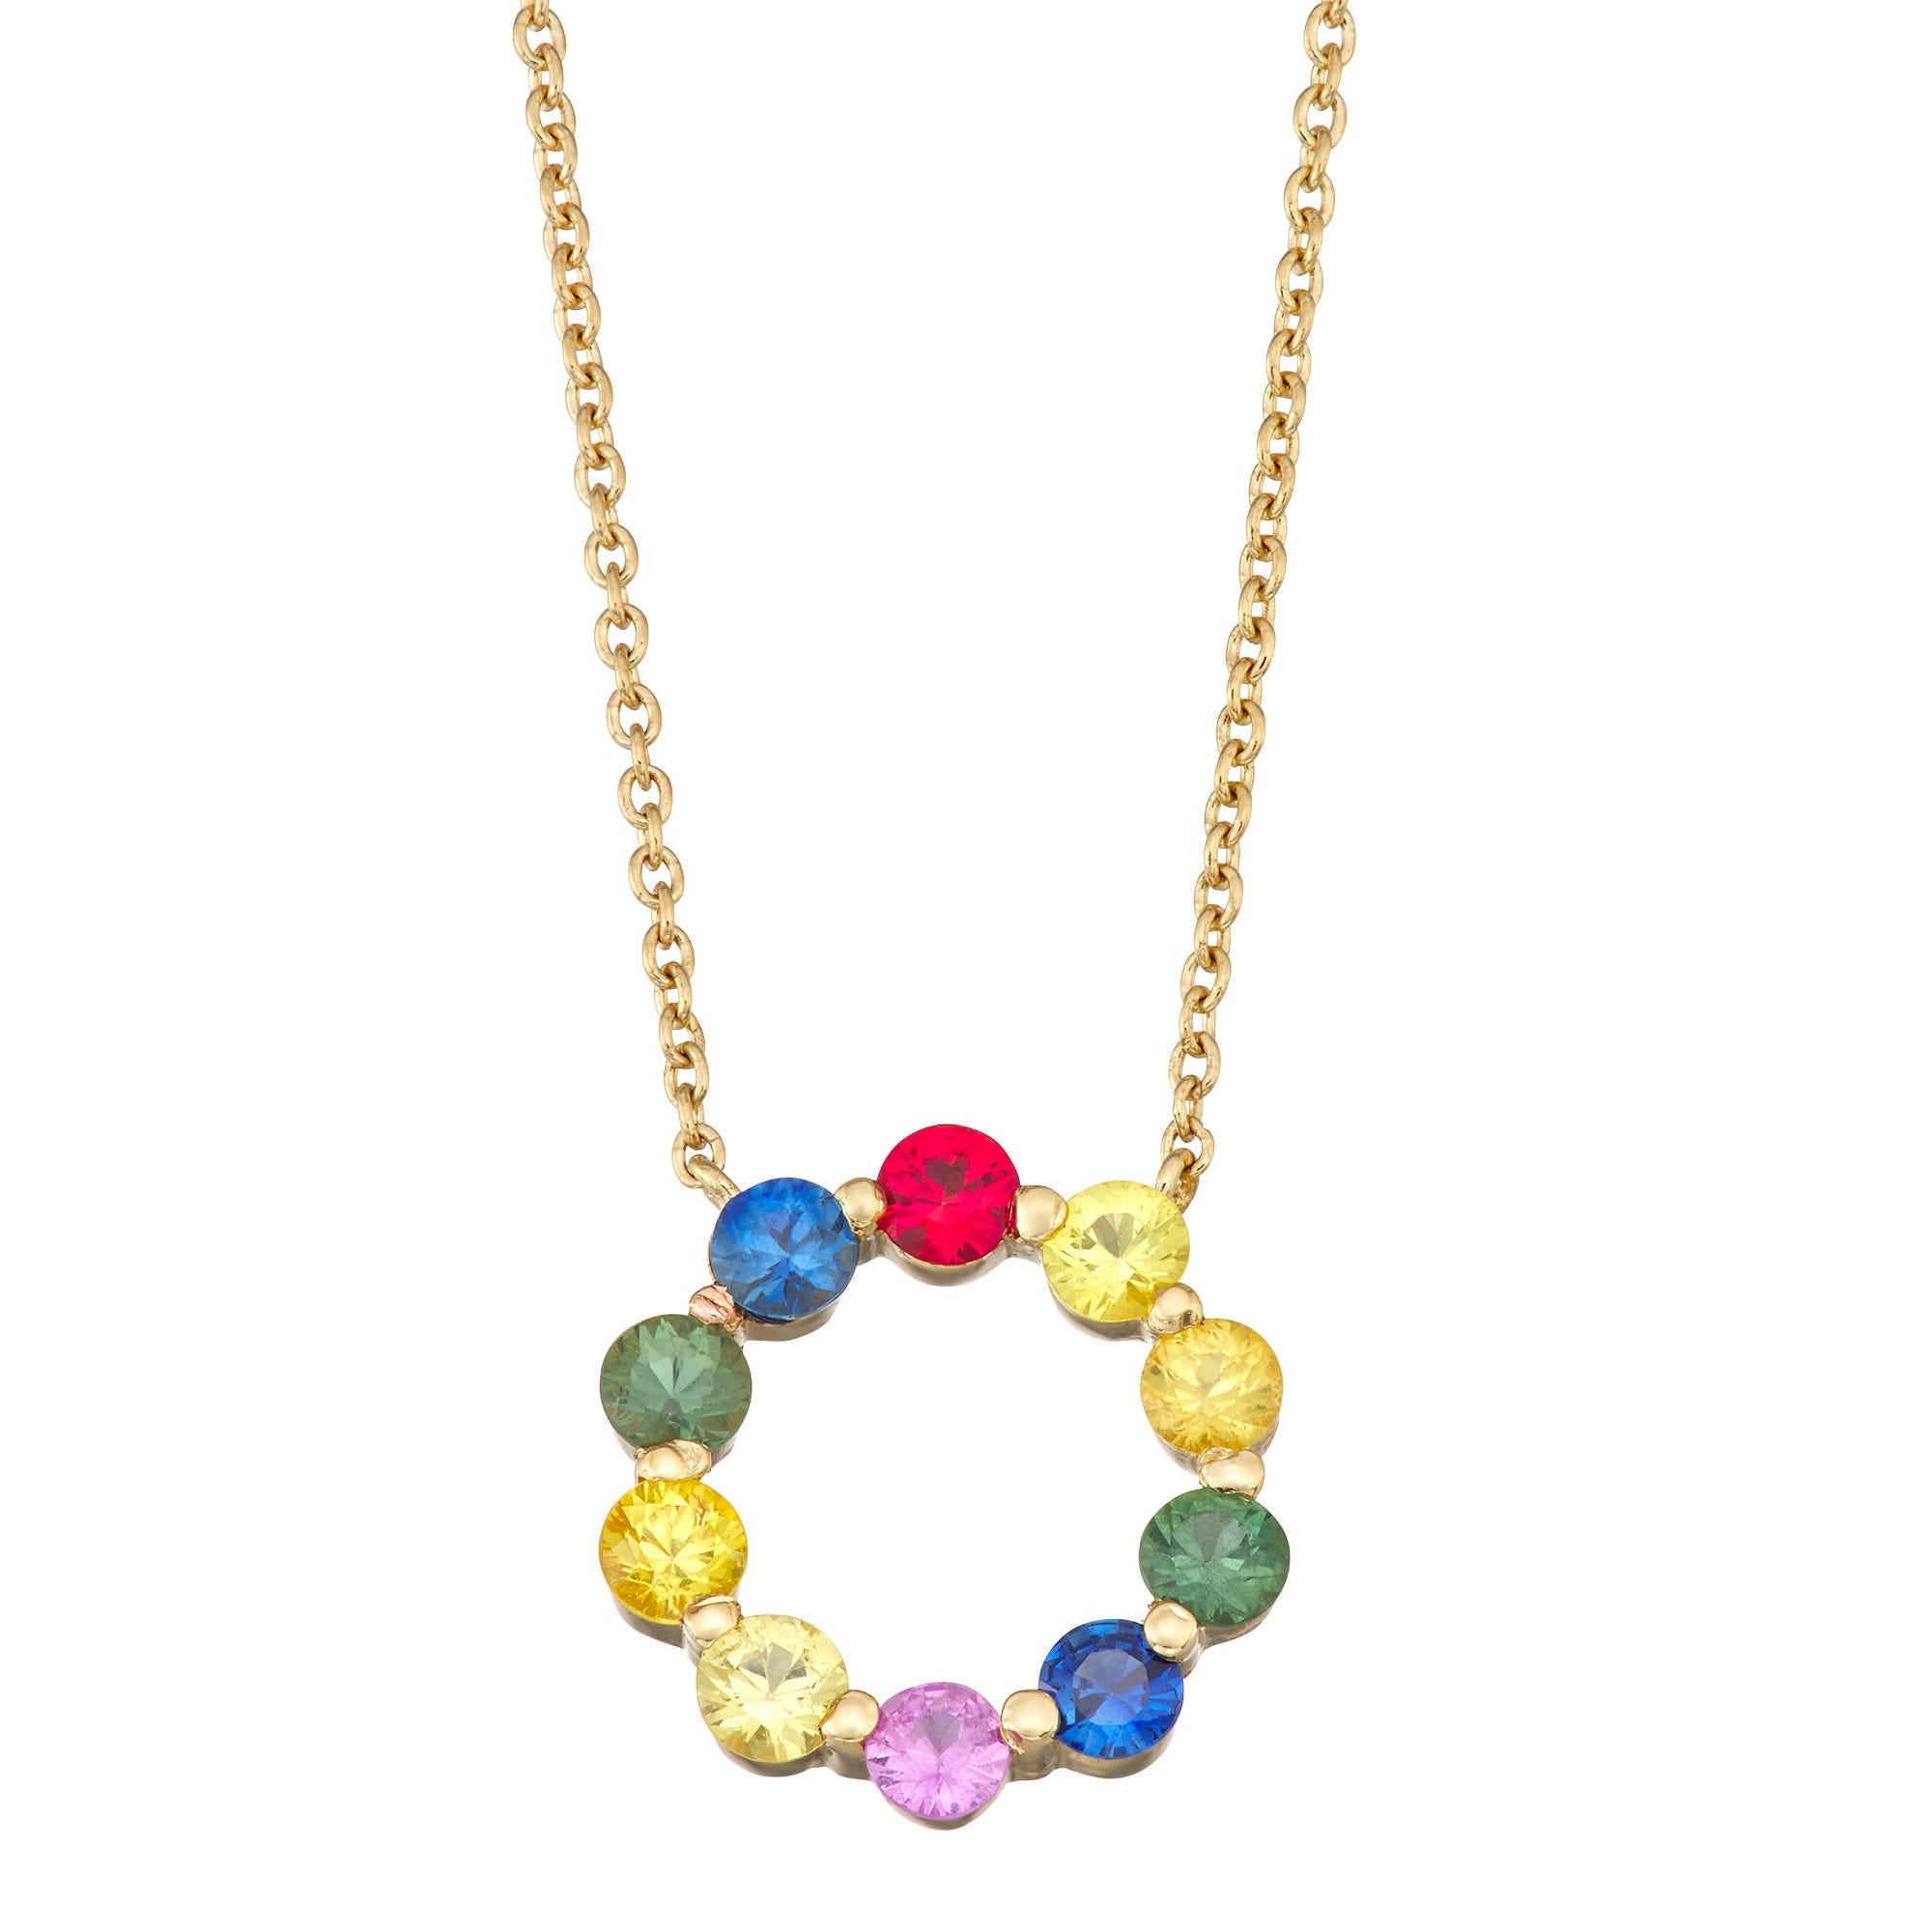 Rainbow Sapphire Circle Necklace in 14k Yellow Gold